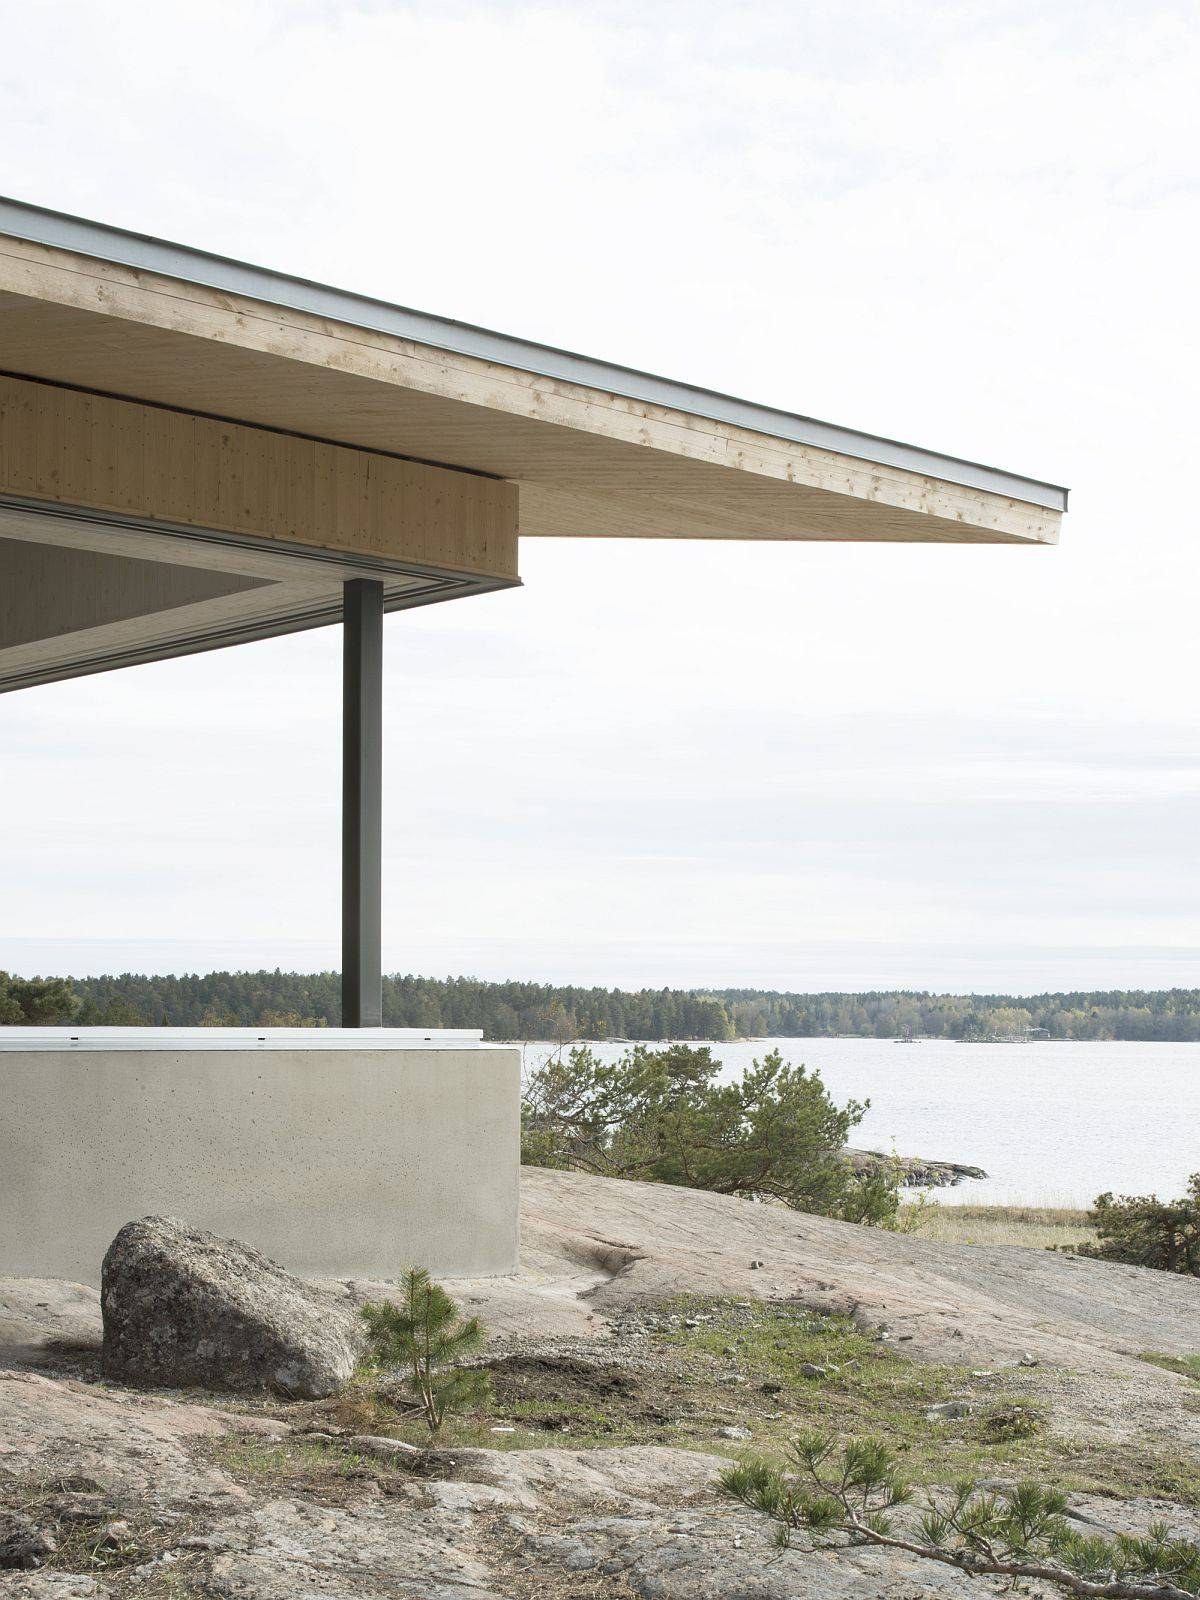 Concrete-plinth-around-teh-house-creates-a-natural-border-with-roof-extending-above-it-64261